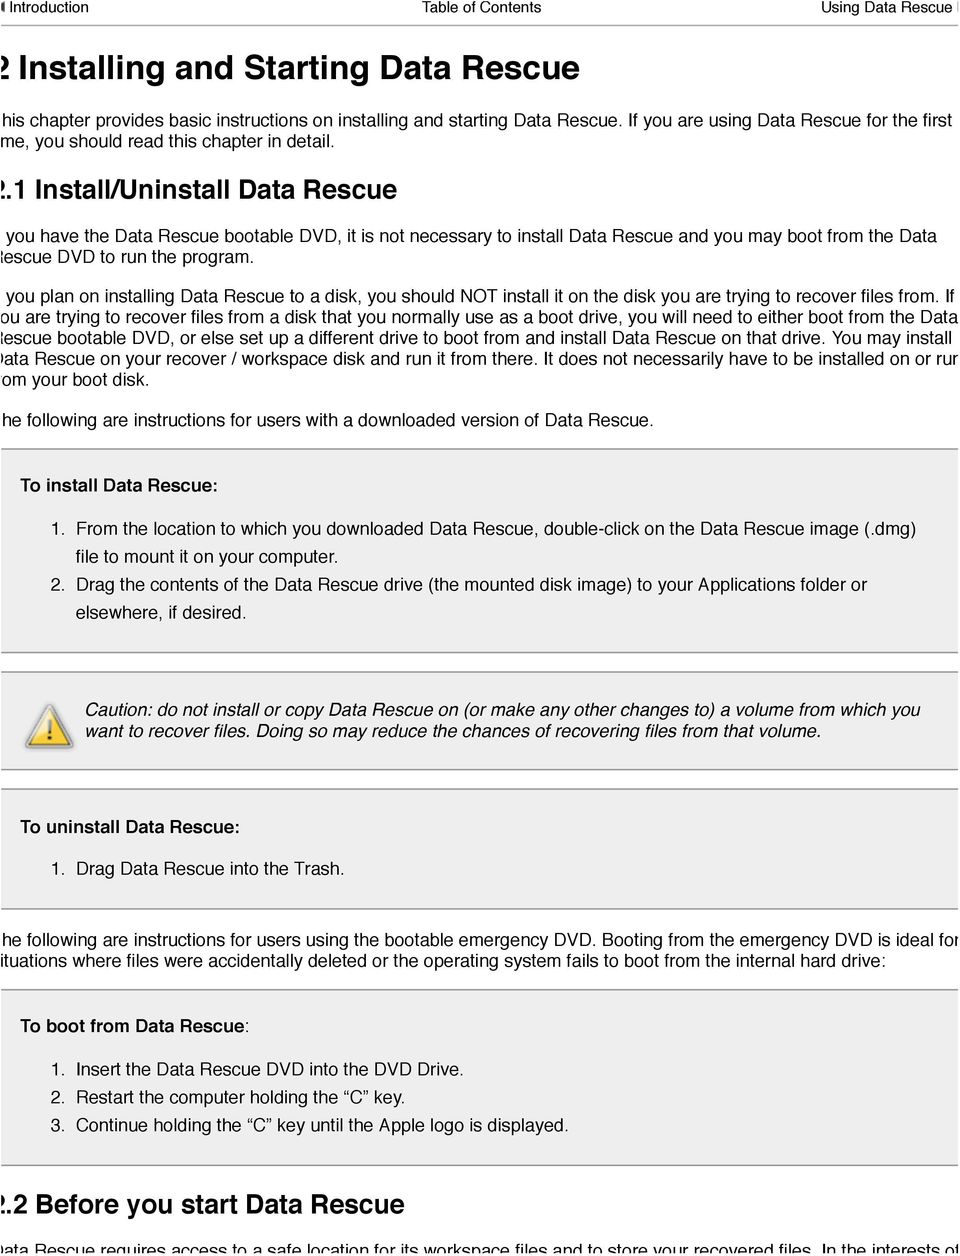 1 Install/Uninstall Data Rescue If you have the Data Rescue bootable DVD, it is not necessary to install Data Rescue and you may boot from the Data Rescue DVD to run the program.